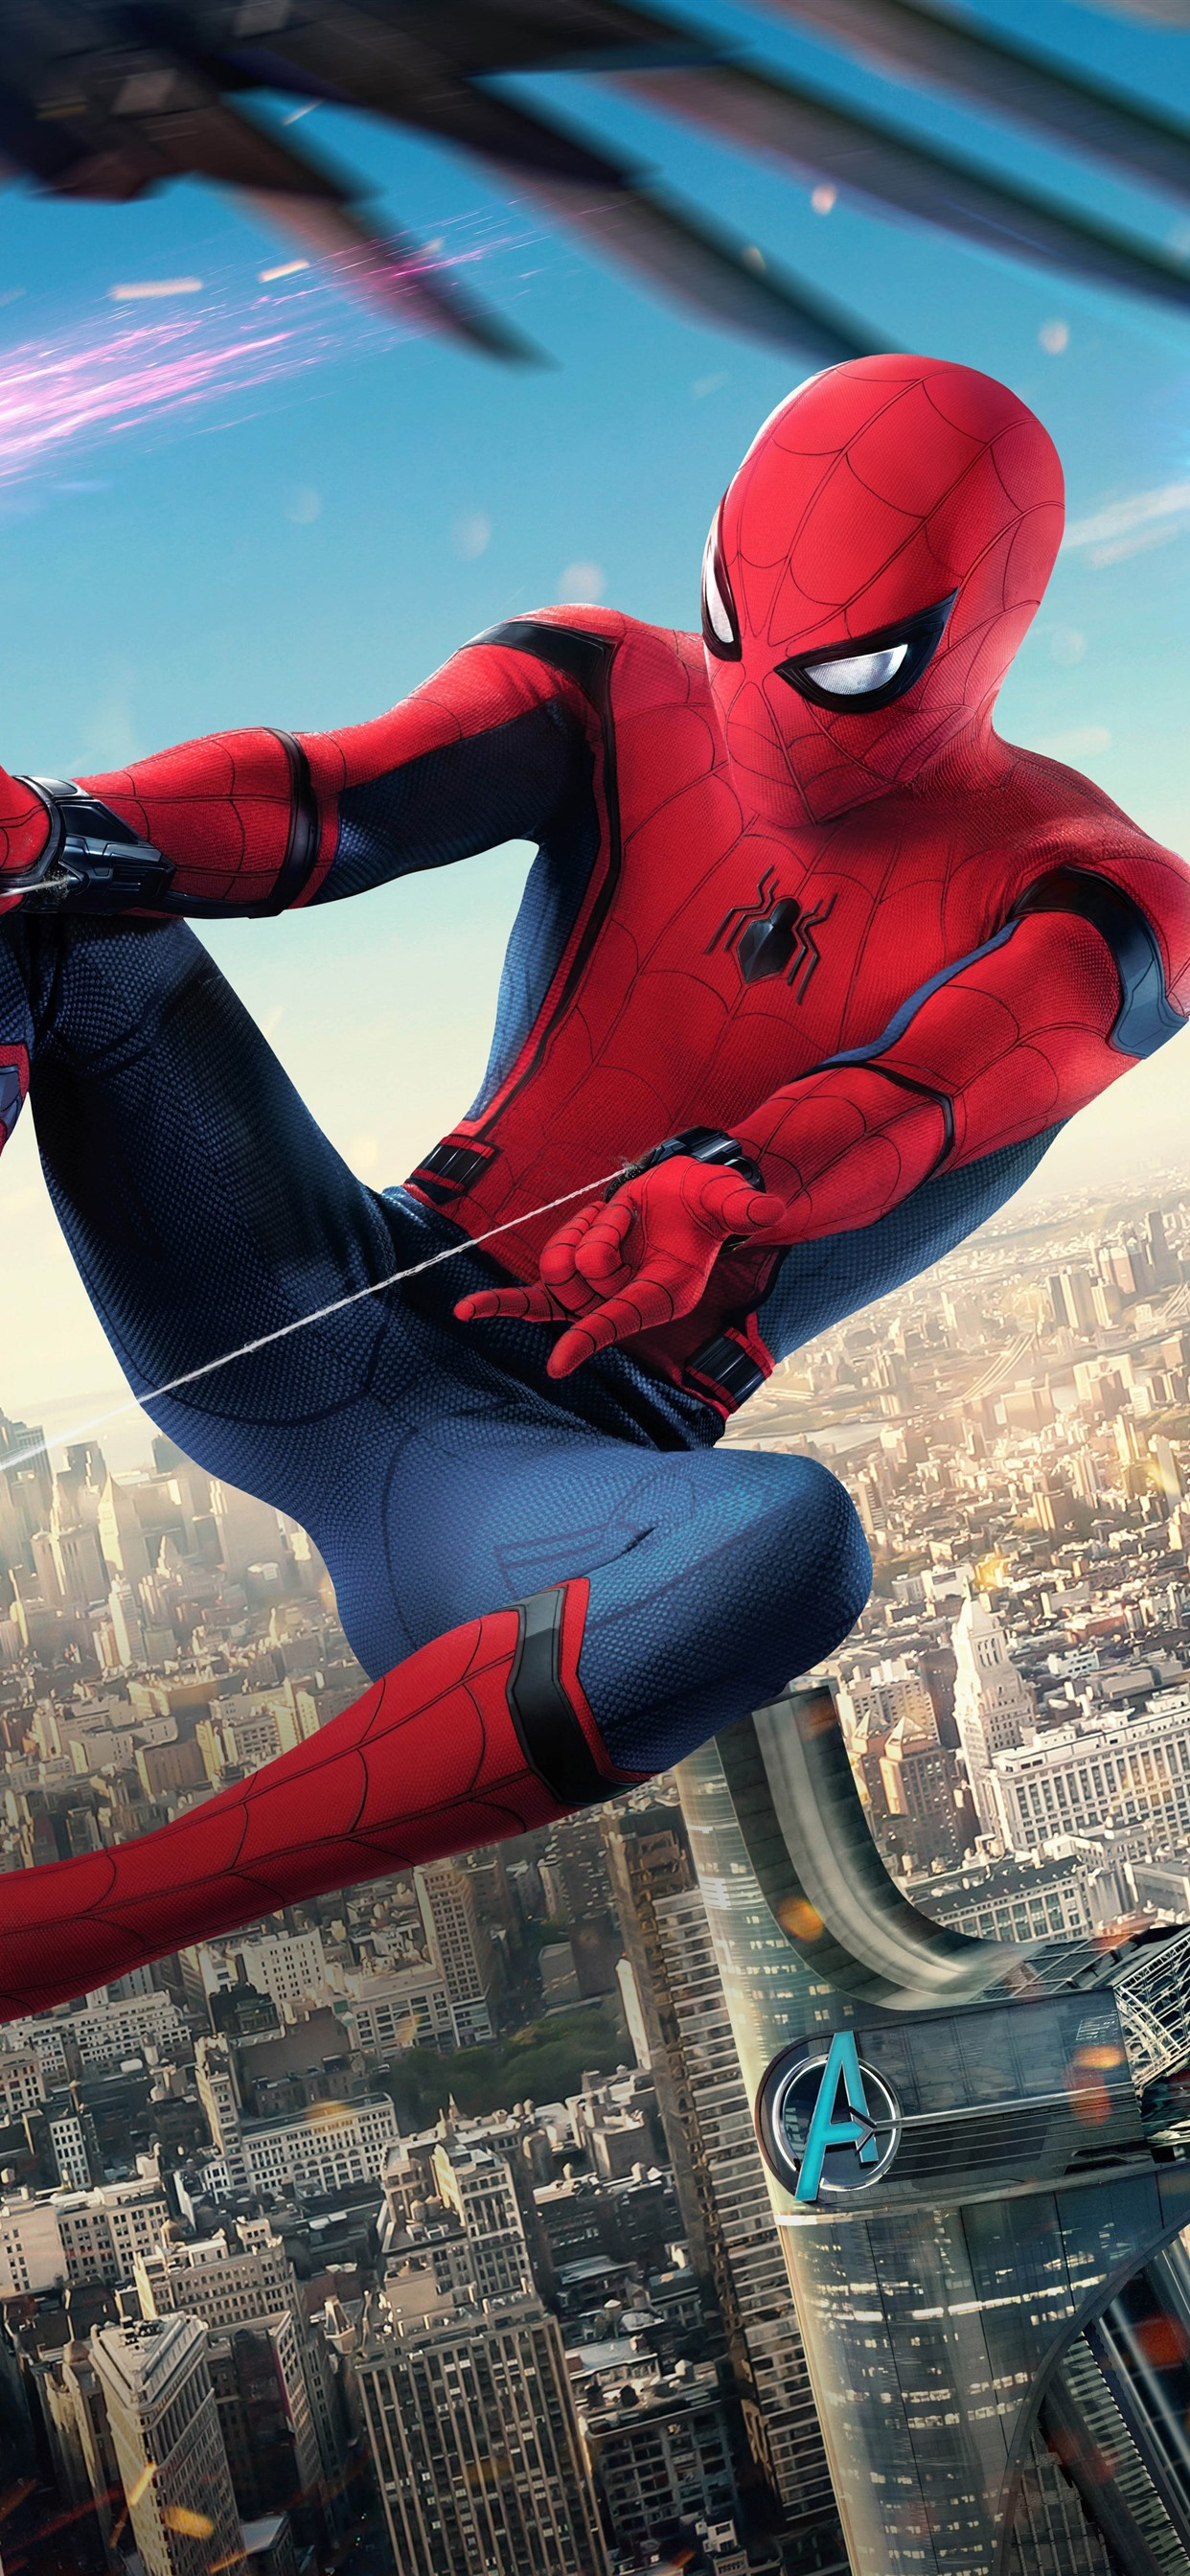 Spider Man Homecoming Iron Man Marvel Superheroes 1242x2688